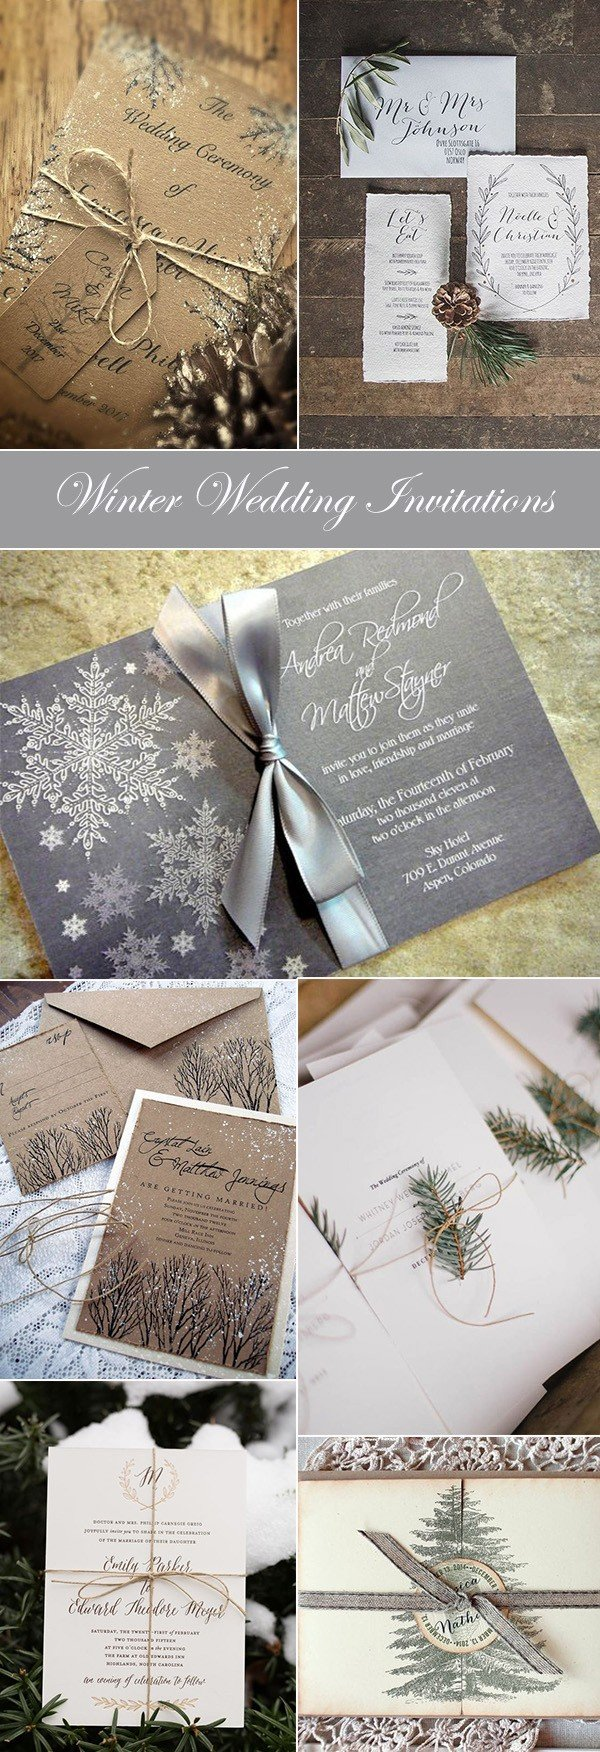 winter wedding invitation ideas for 2017 trends